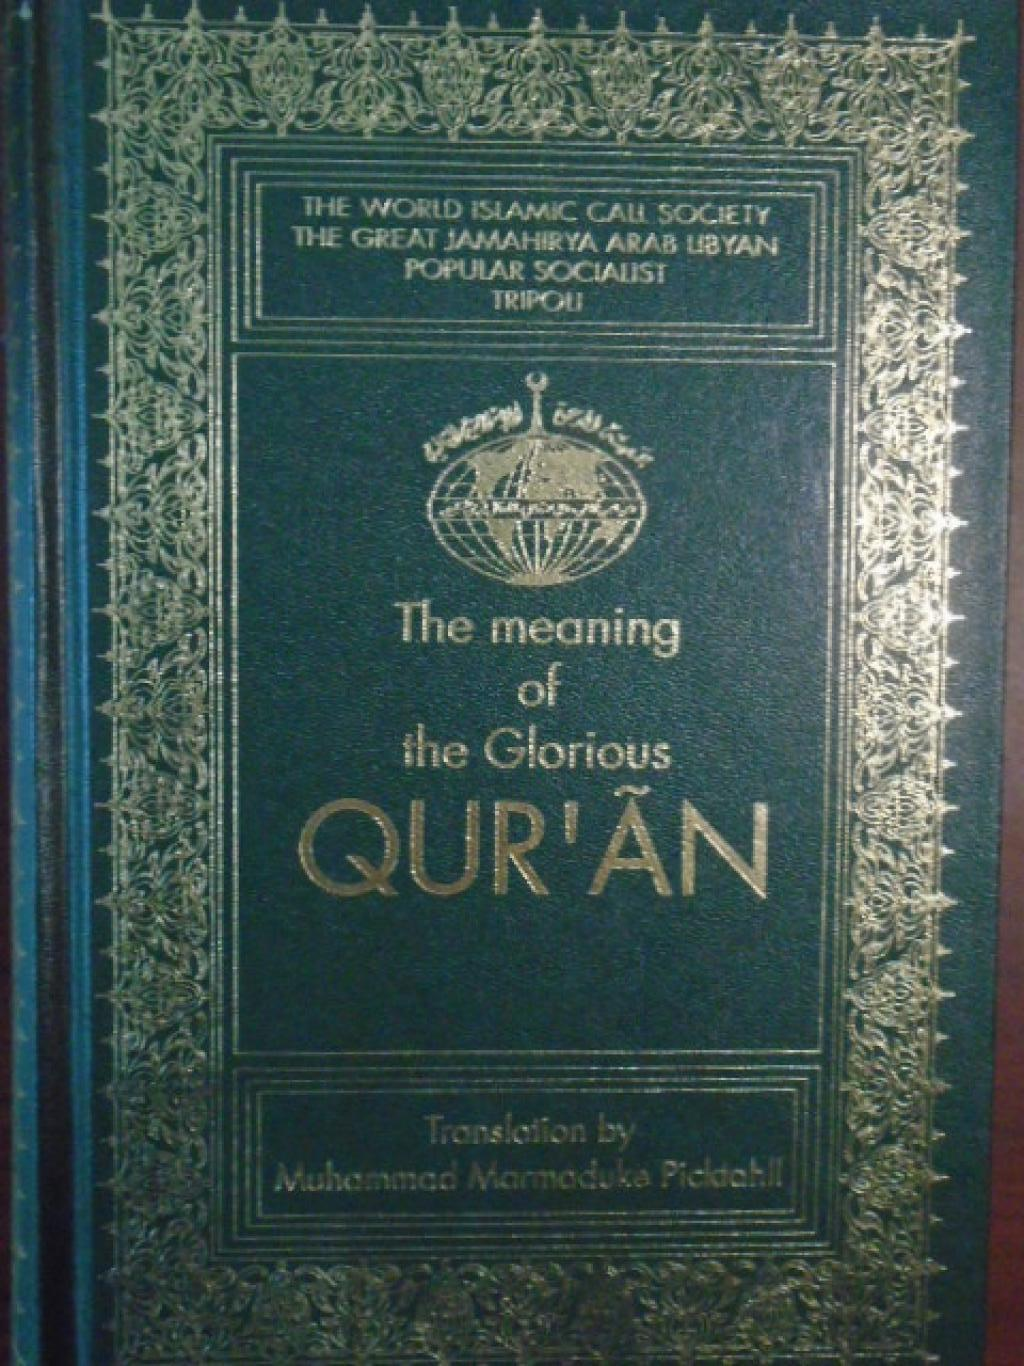 The meaning of The Glorious Quran,